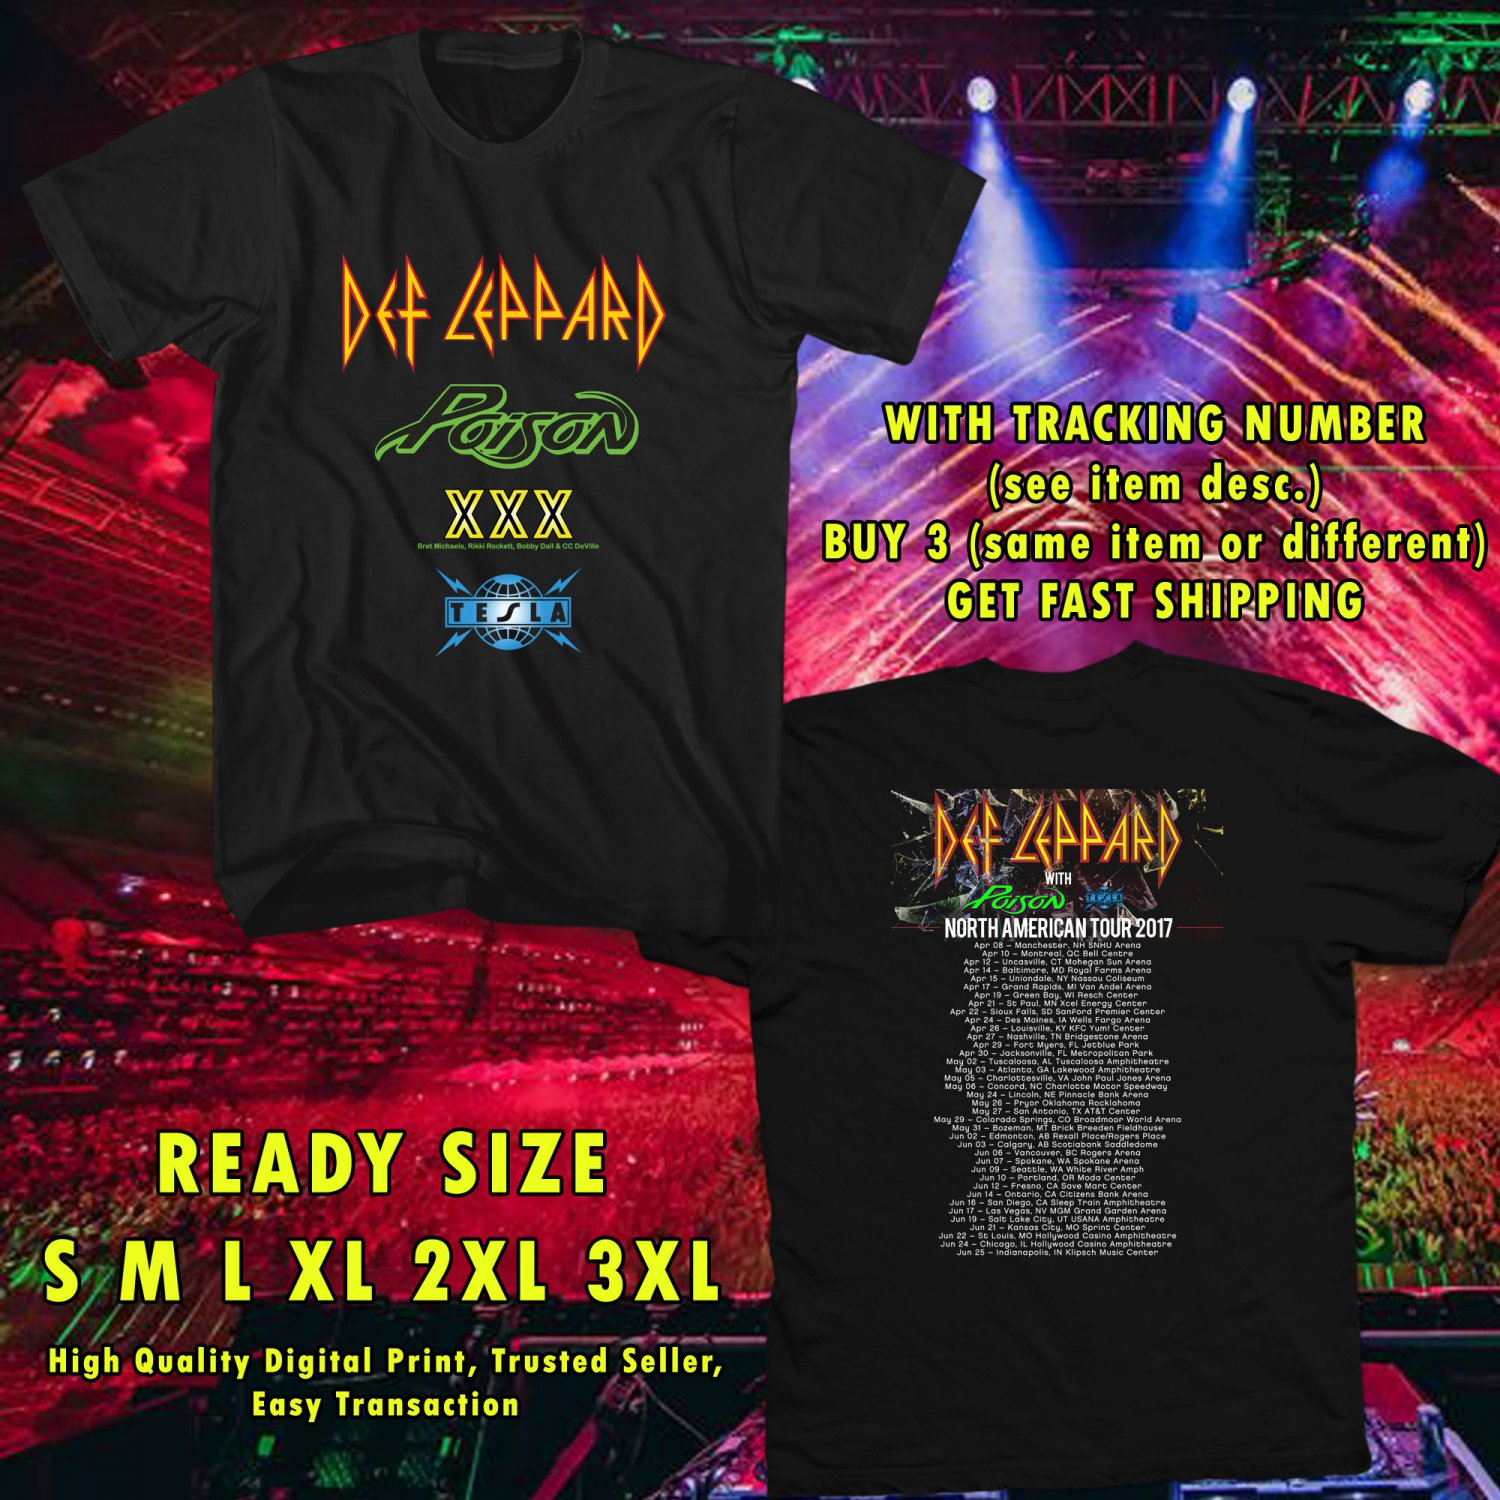 NEW DEF LEPPARD, POSION AND TESLA TOUR 2017 black TEE 2 SIDE DMTR 112